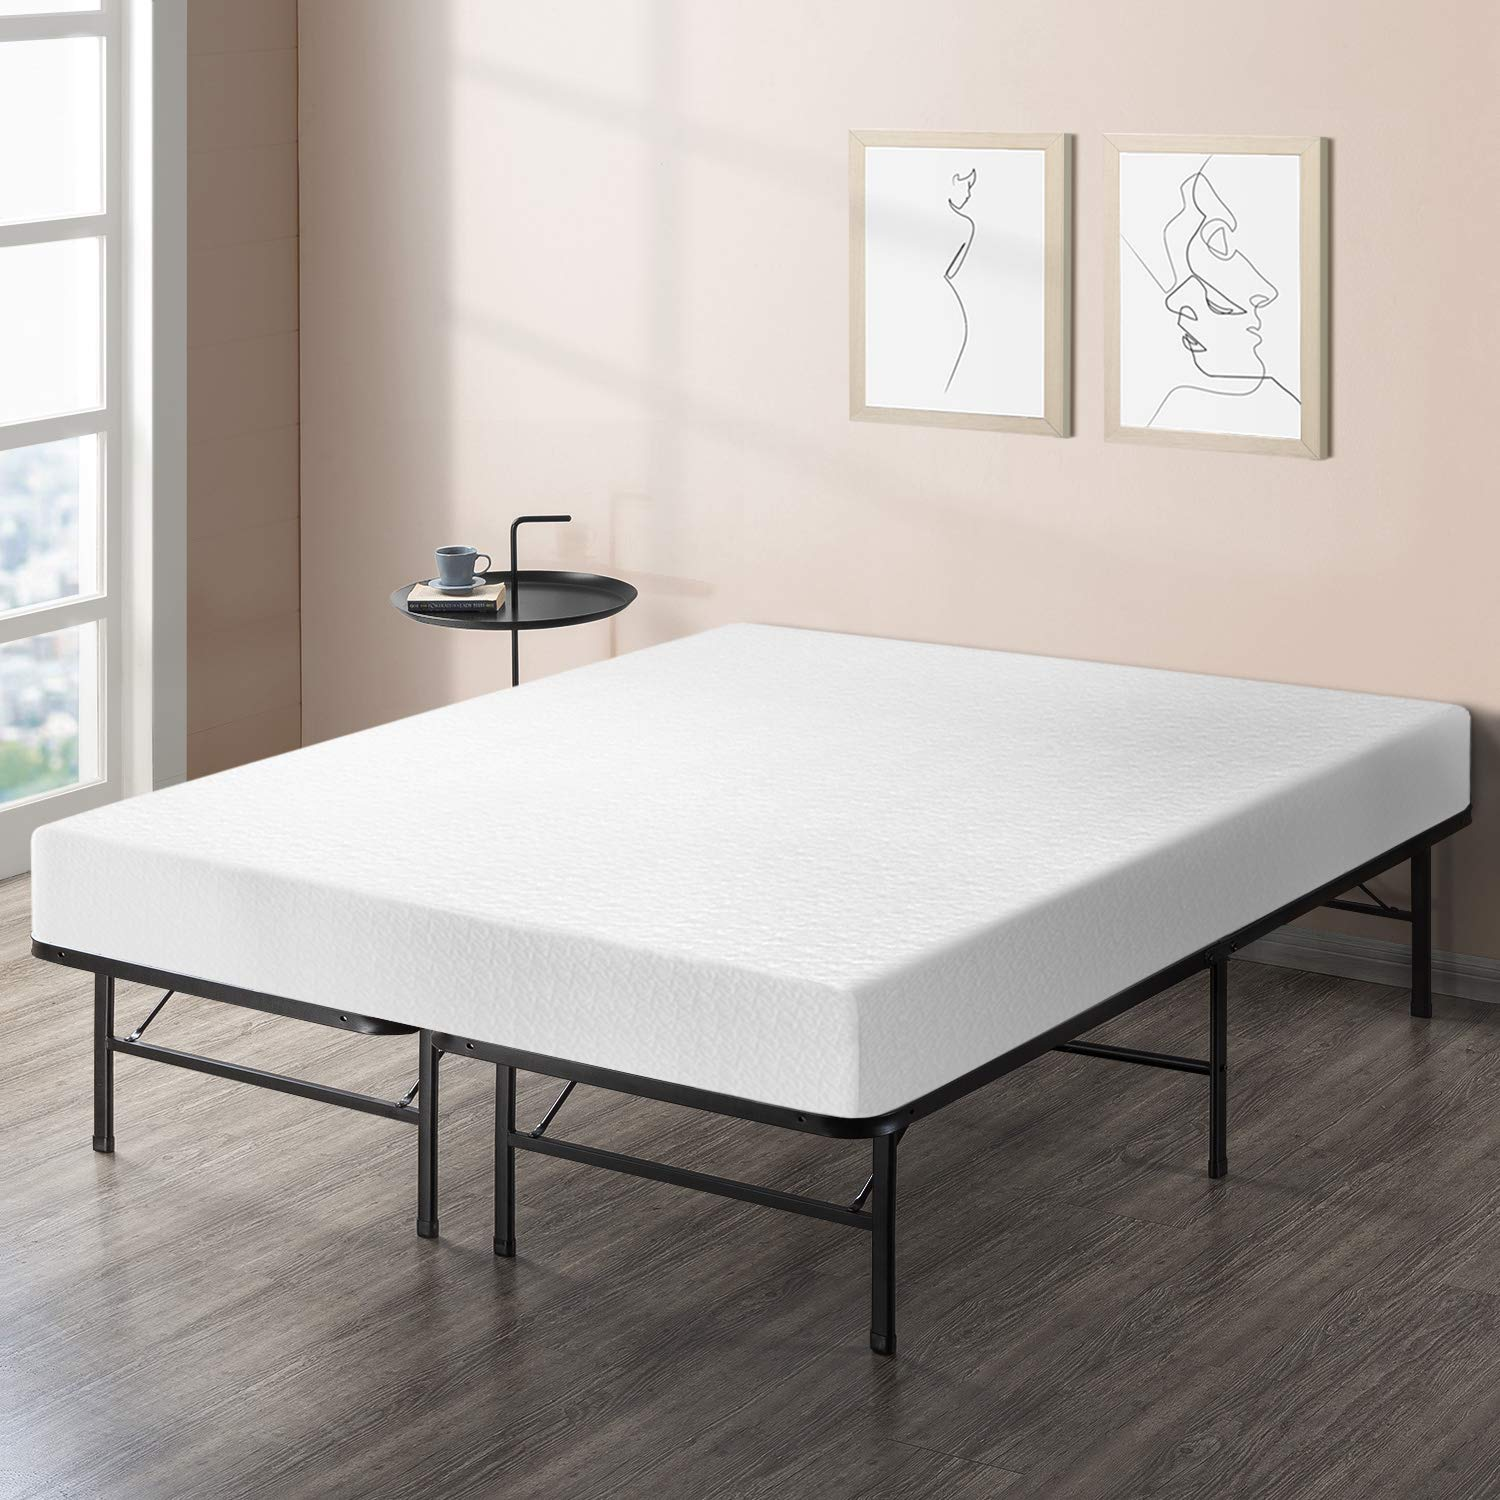 Best Price Mattress 8'' Comfort Premium Memory Foam Mattress and Bed Frame Set, King by Best Price Mattress